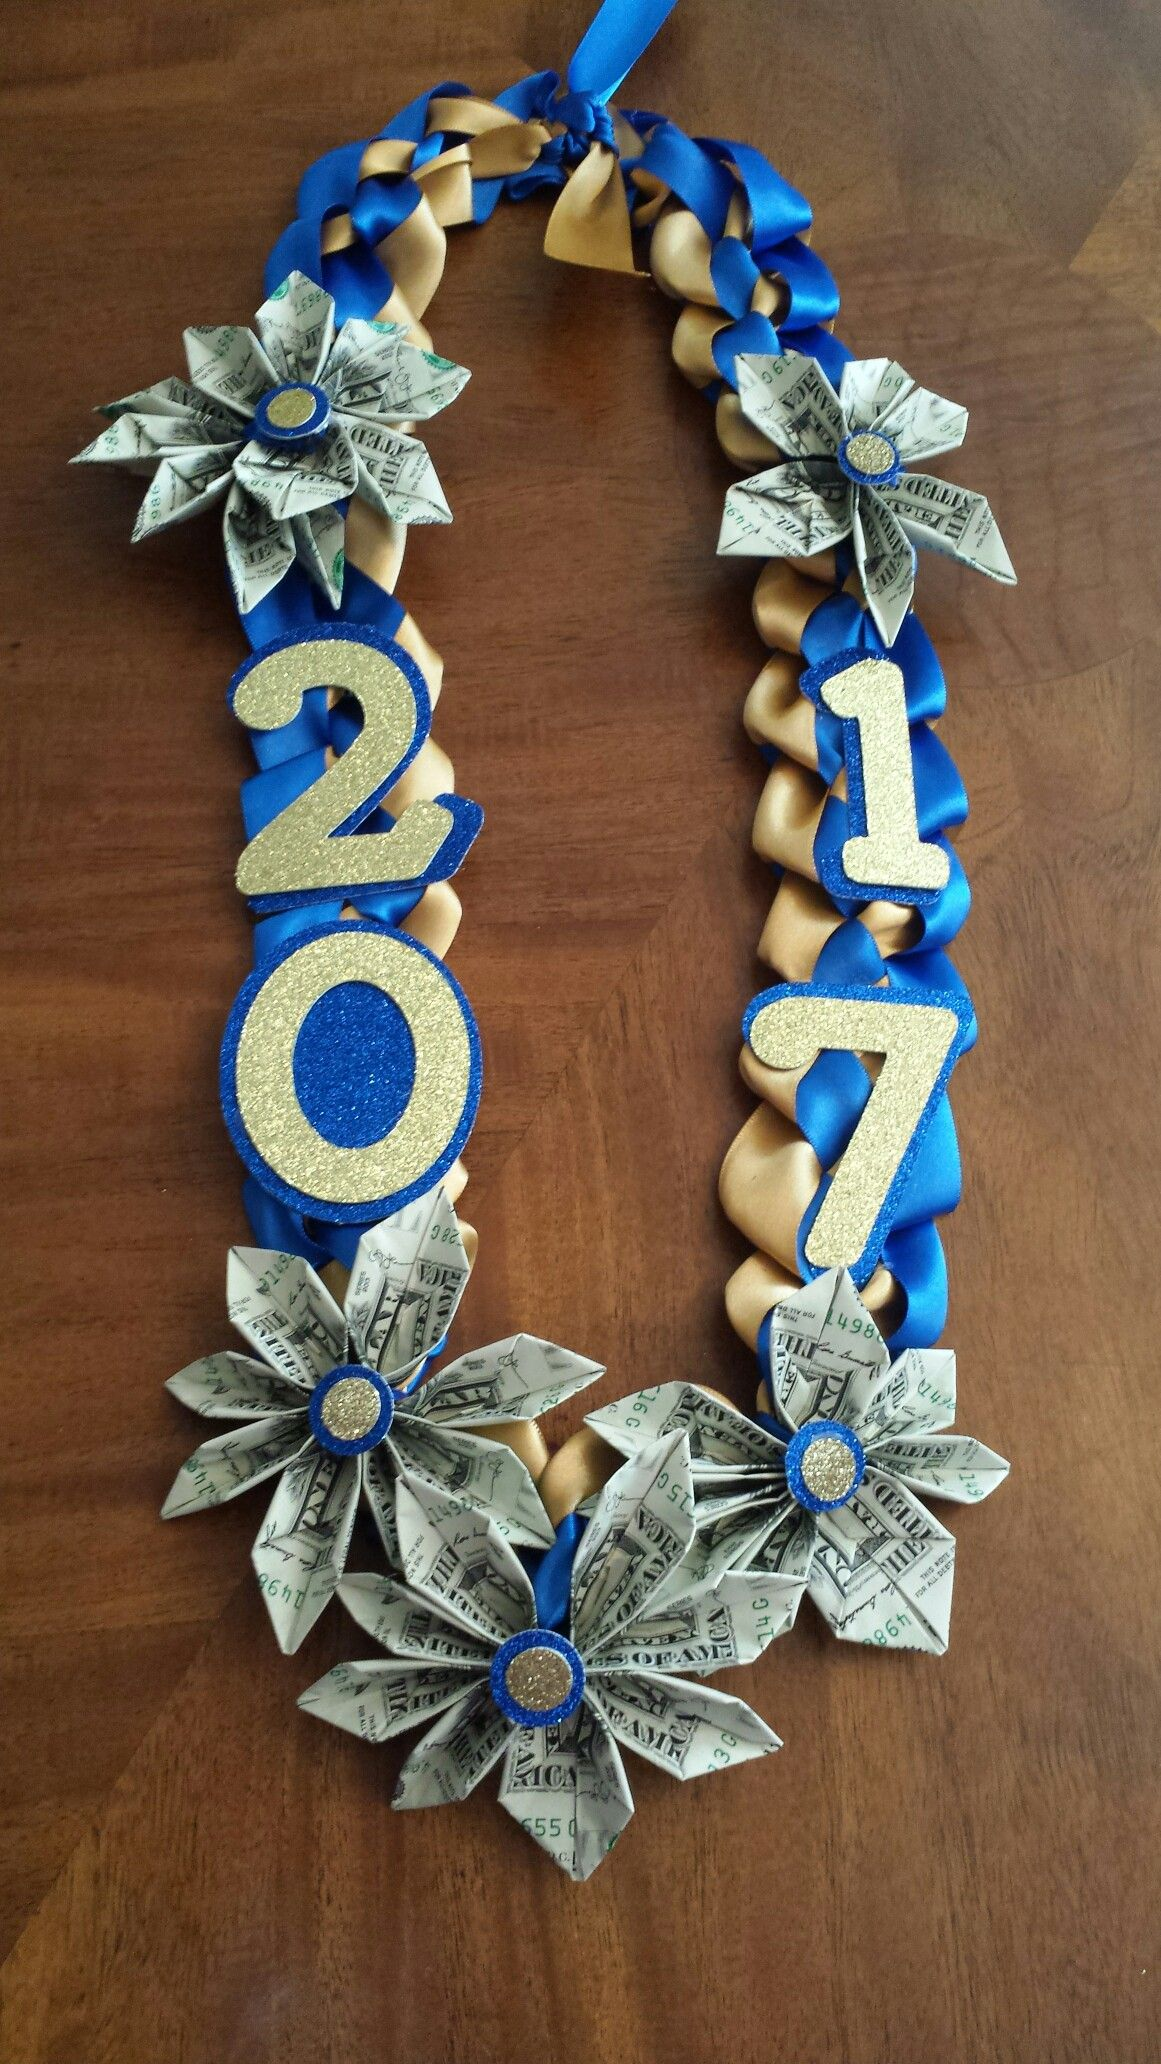 Double ribbon money flower lei with images graduation